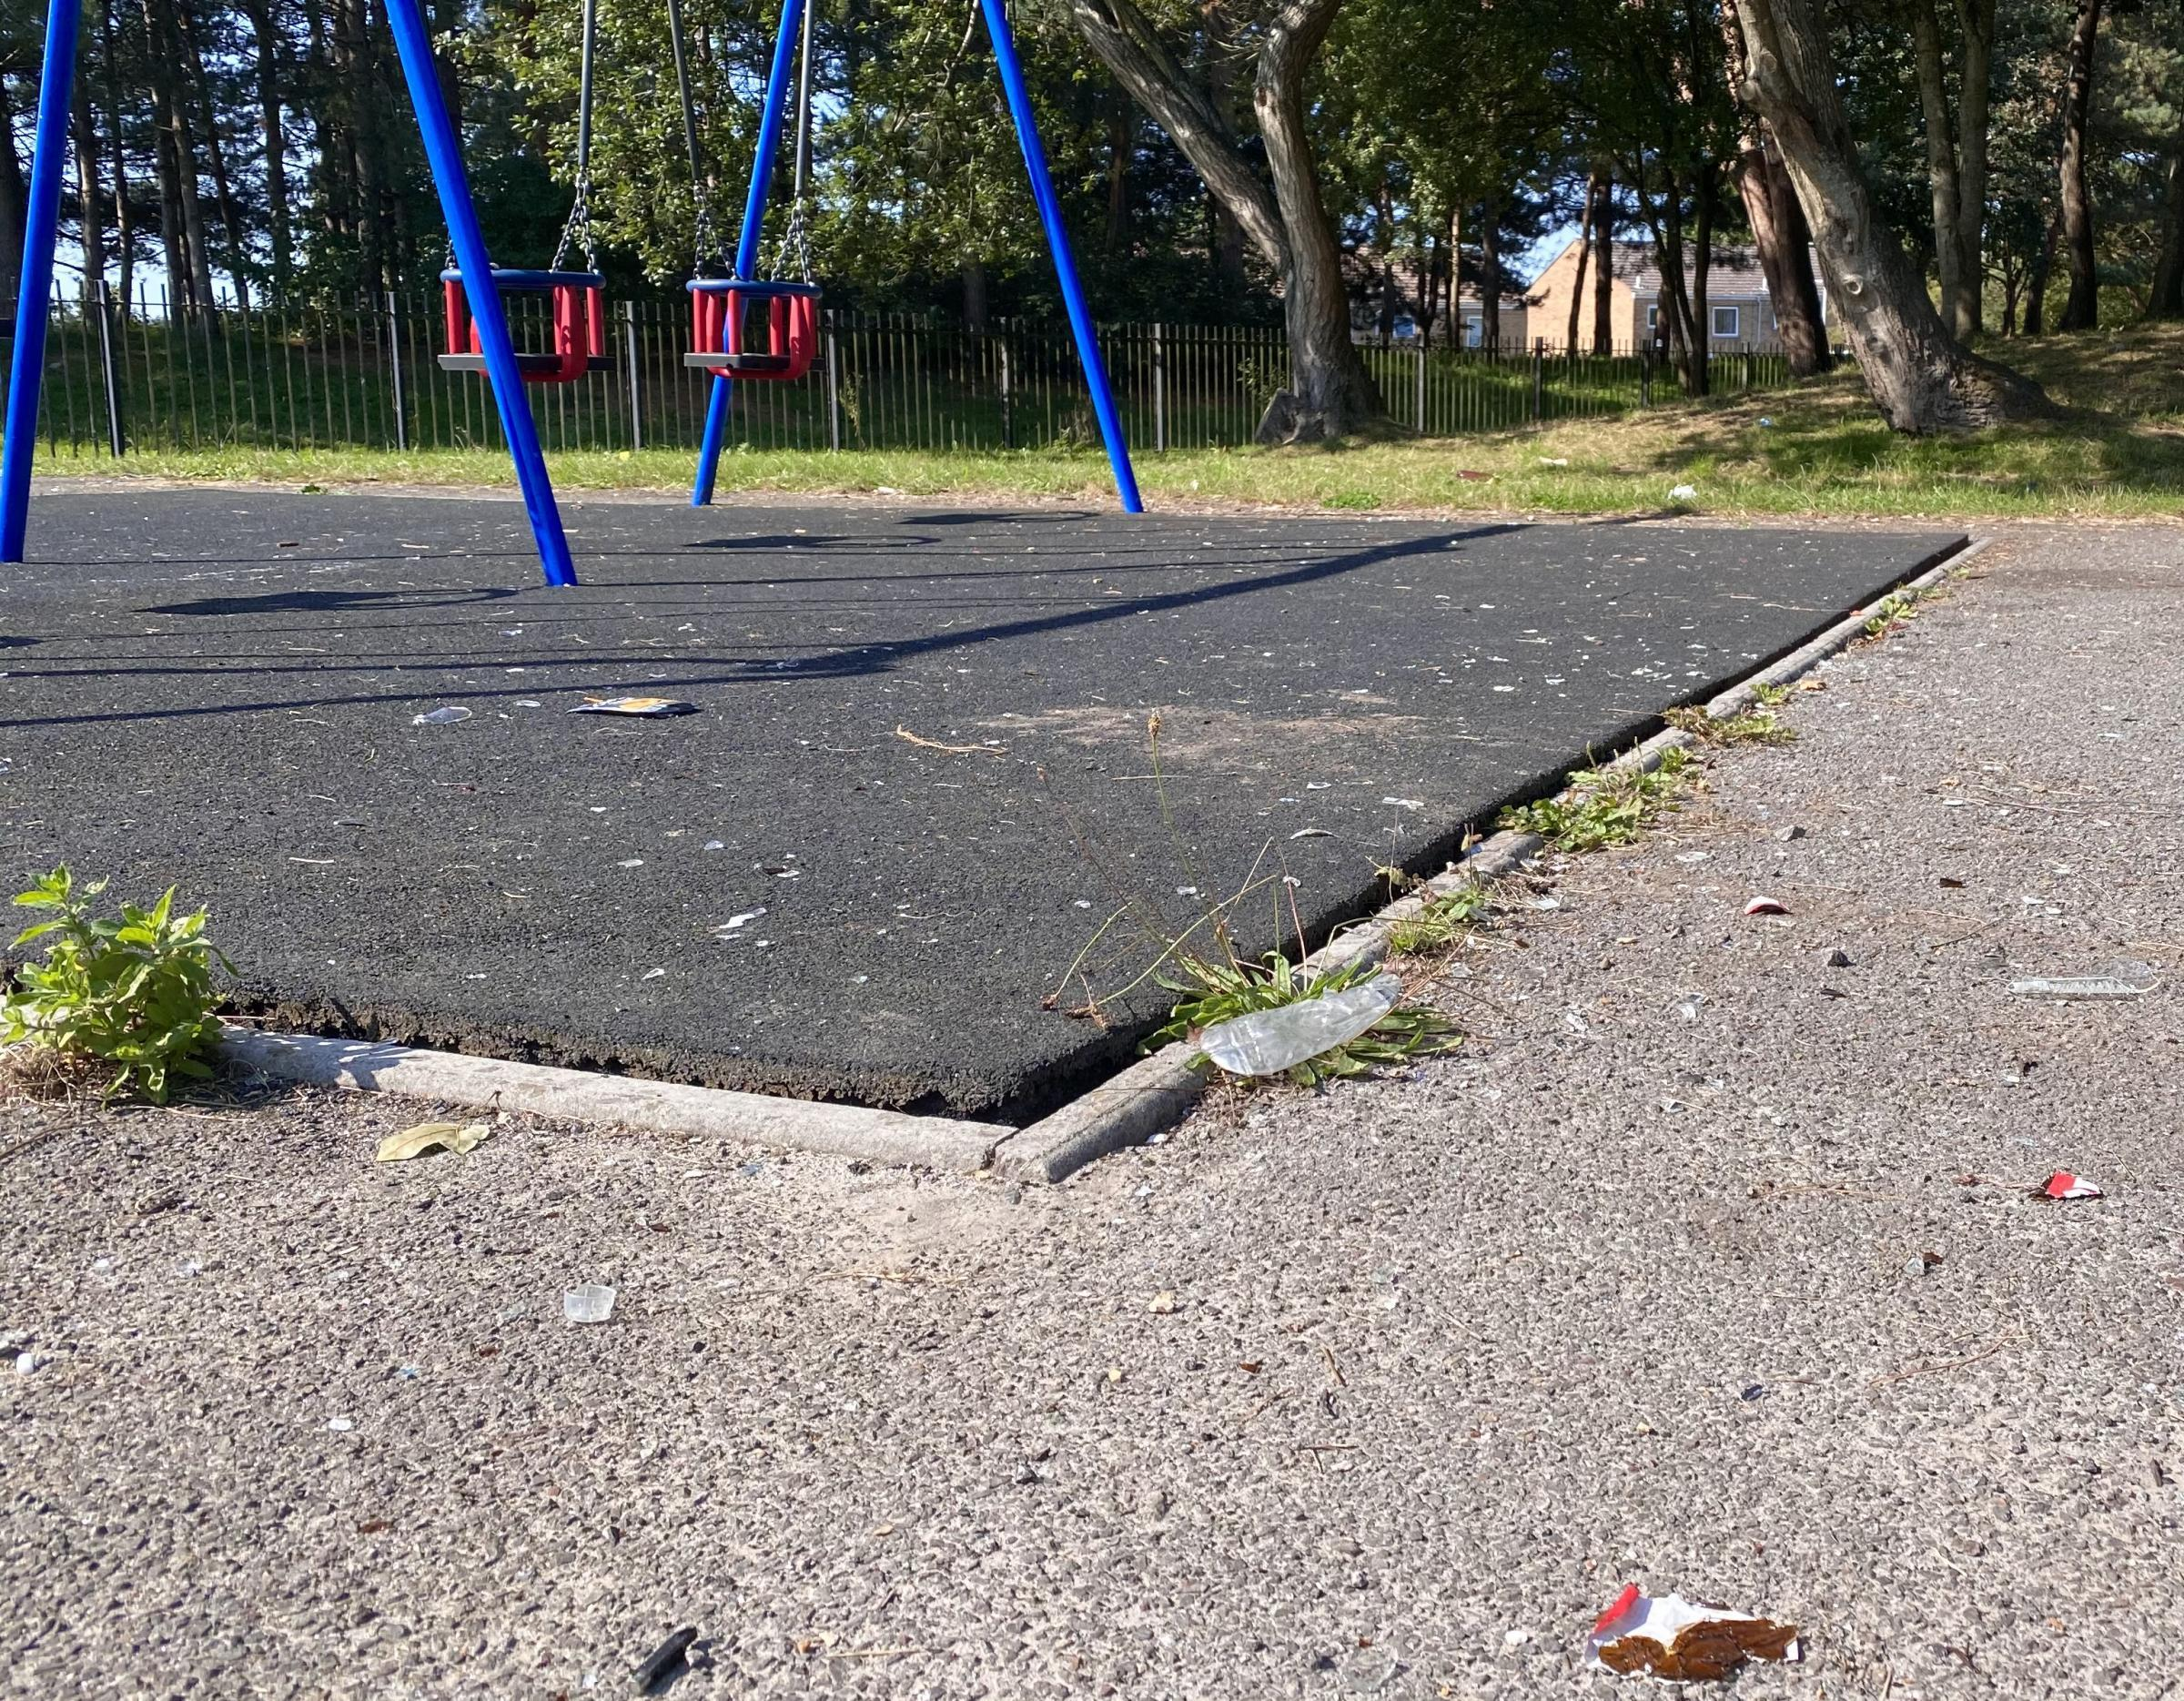 'The park is now a magnet for antisocial behaviour'